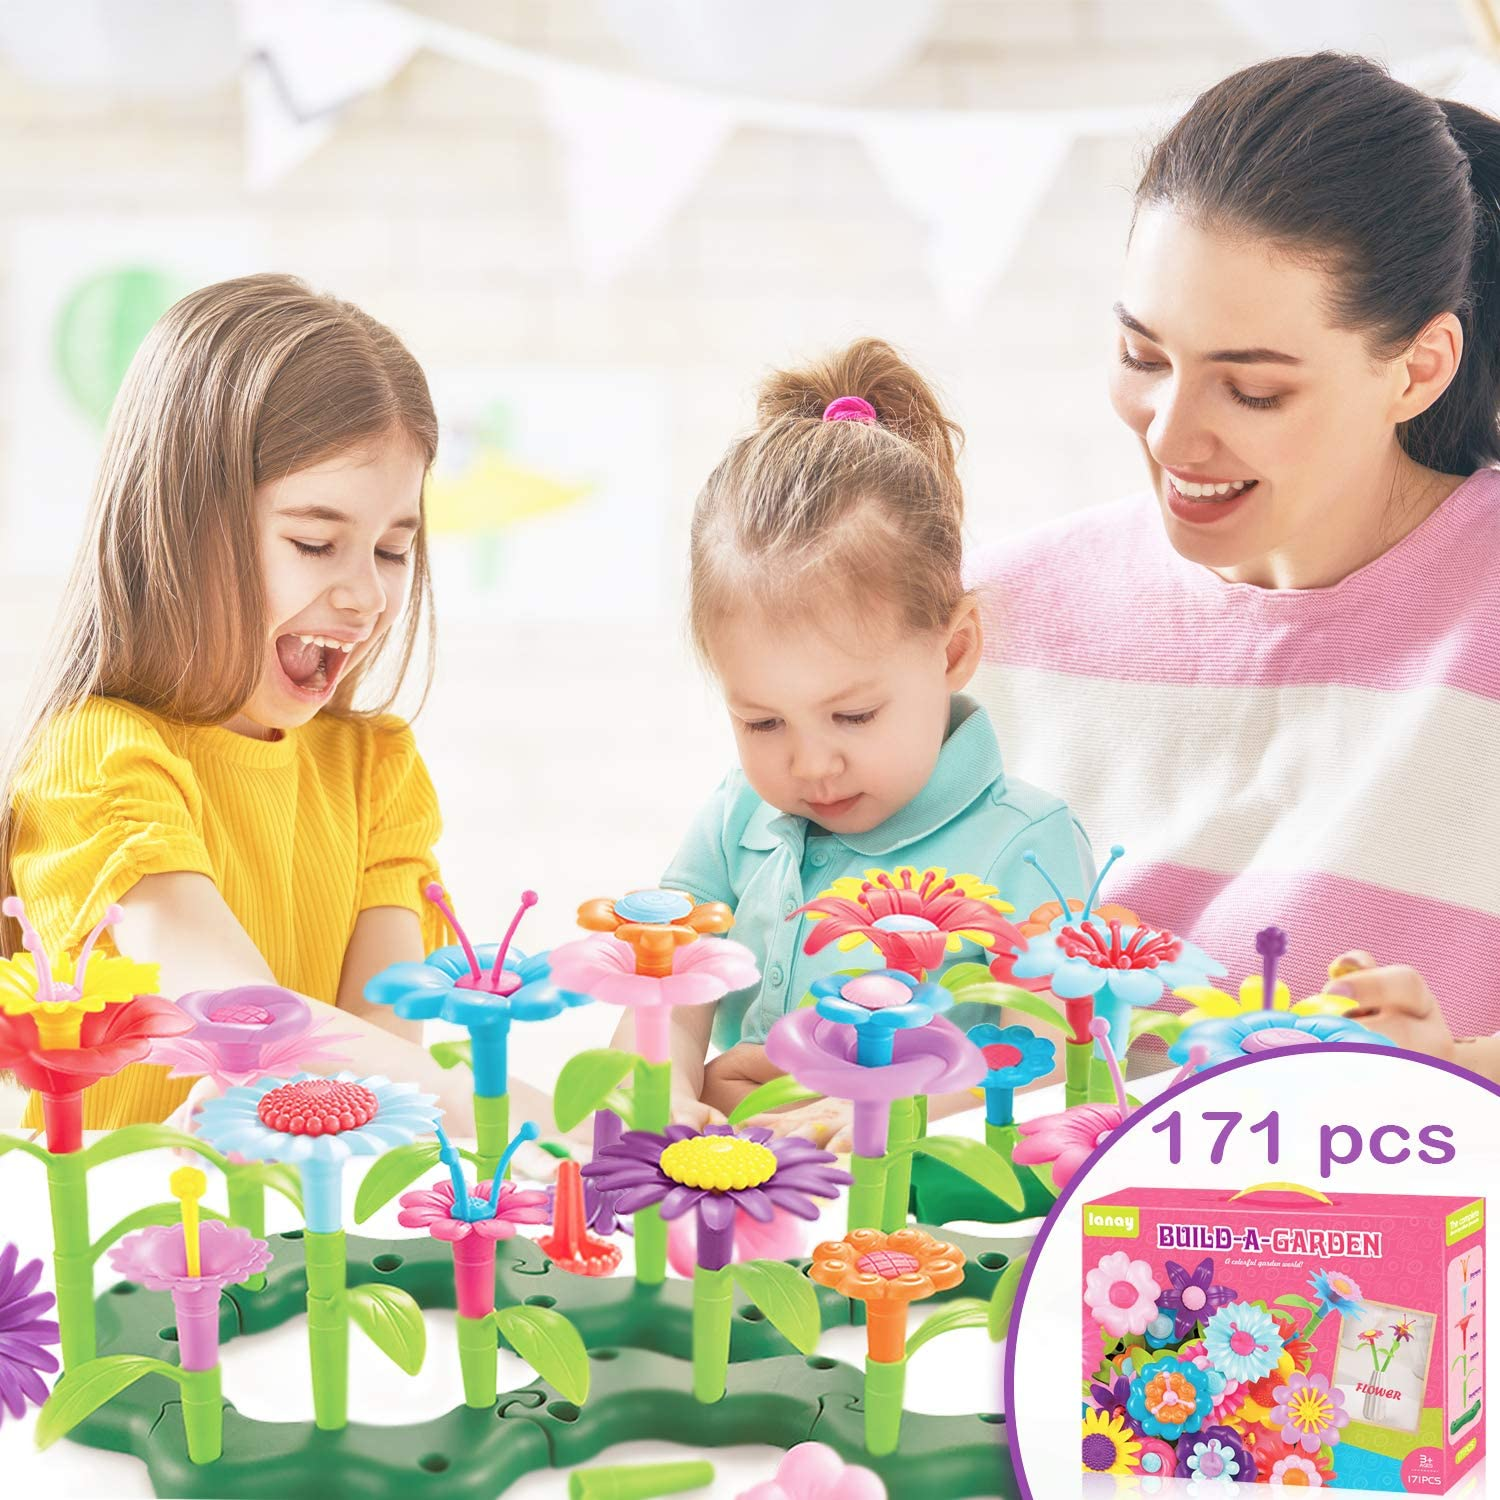 171 Pcs Flower Garden Building Toys Set for Unisex Kids, Stem Toys Build a Garden for Girls, Gifts for Birthday, Christmas, Easter, Toddler Activity Toys for 3 4 5 6 7 Year Old Kids, 2020 New Edition